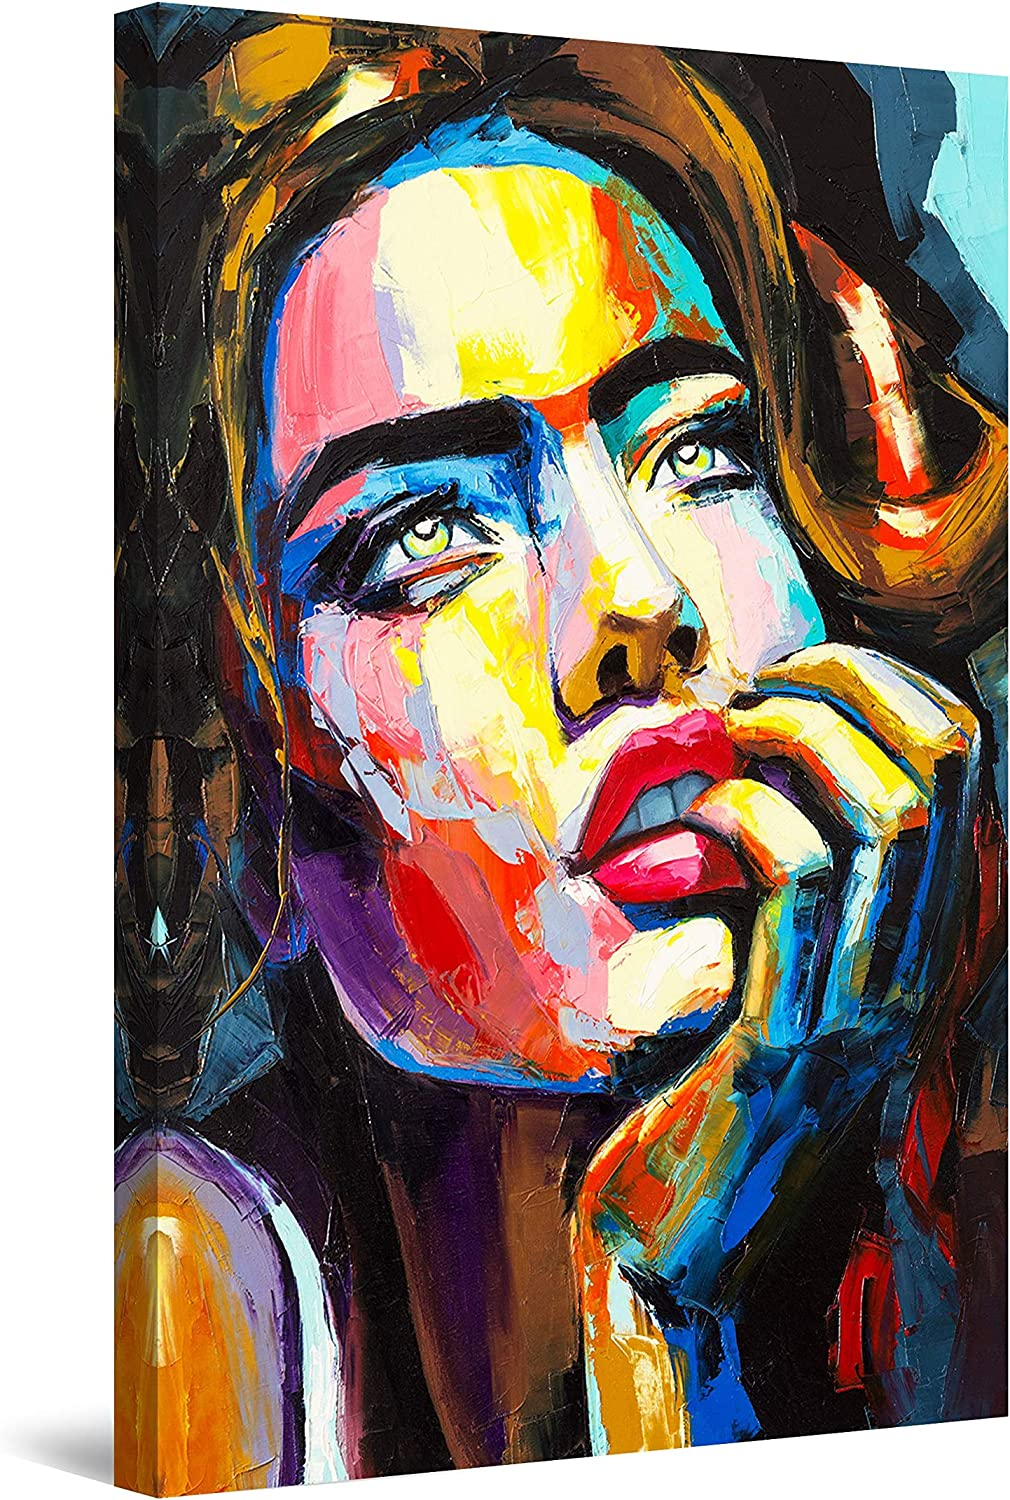 A surprise price is realized Startonight Canvas Wall Art Decor Contemplation Colored Woman Max 50% OFF of